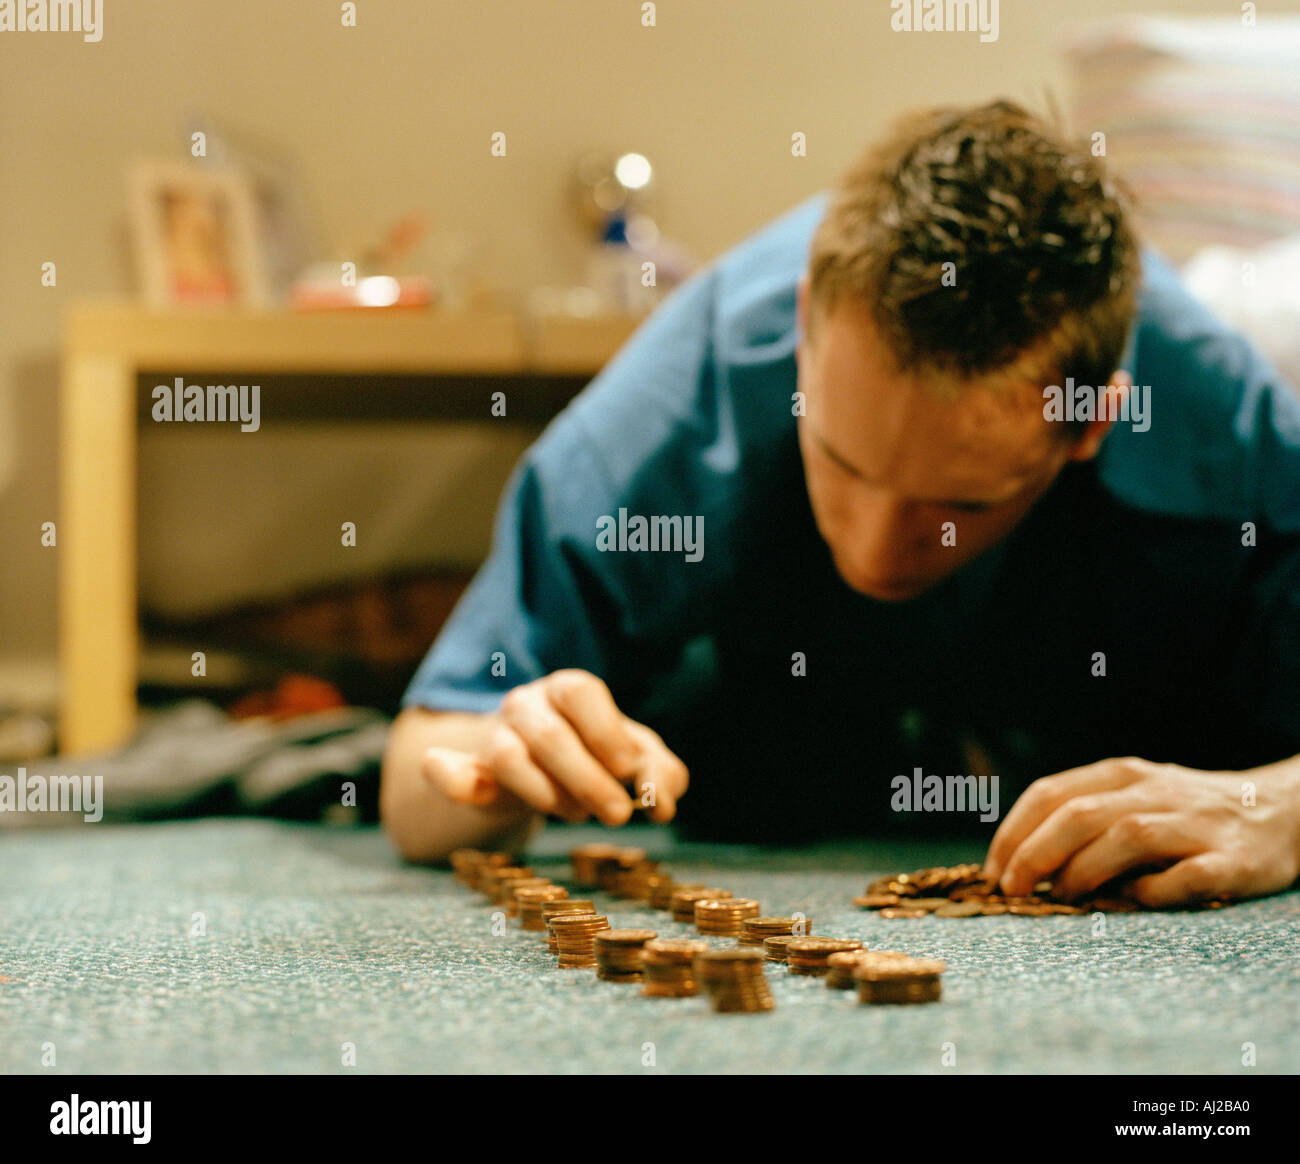 young male lining up coins on floor - Stock Image